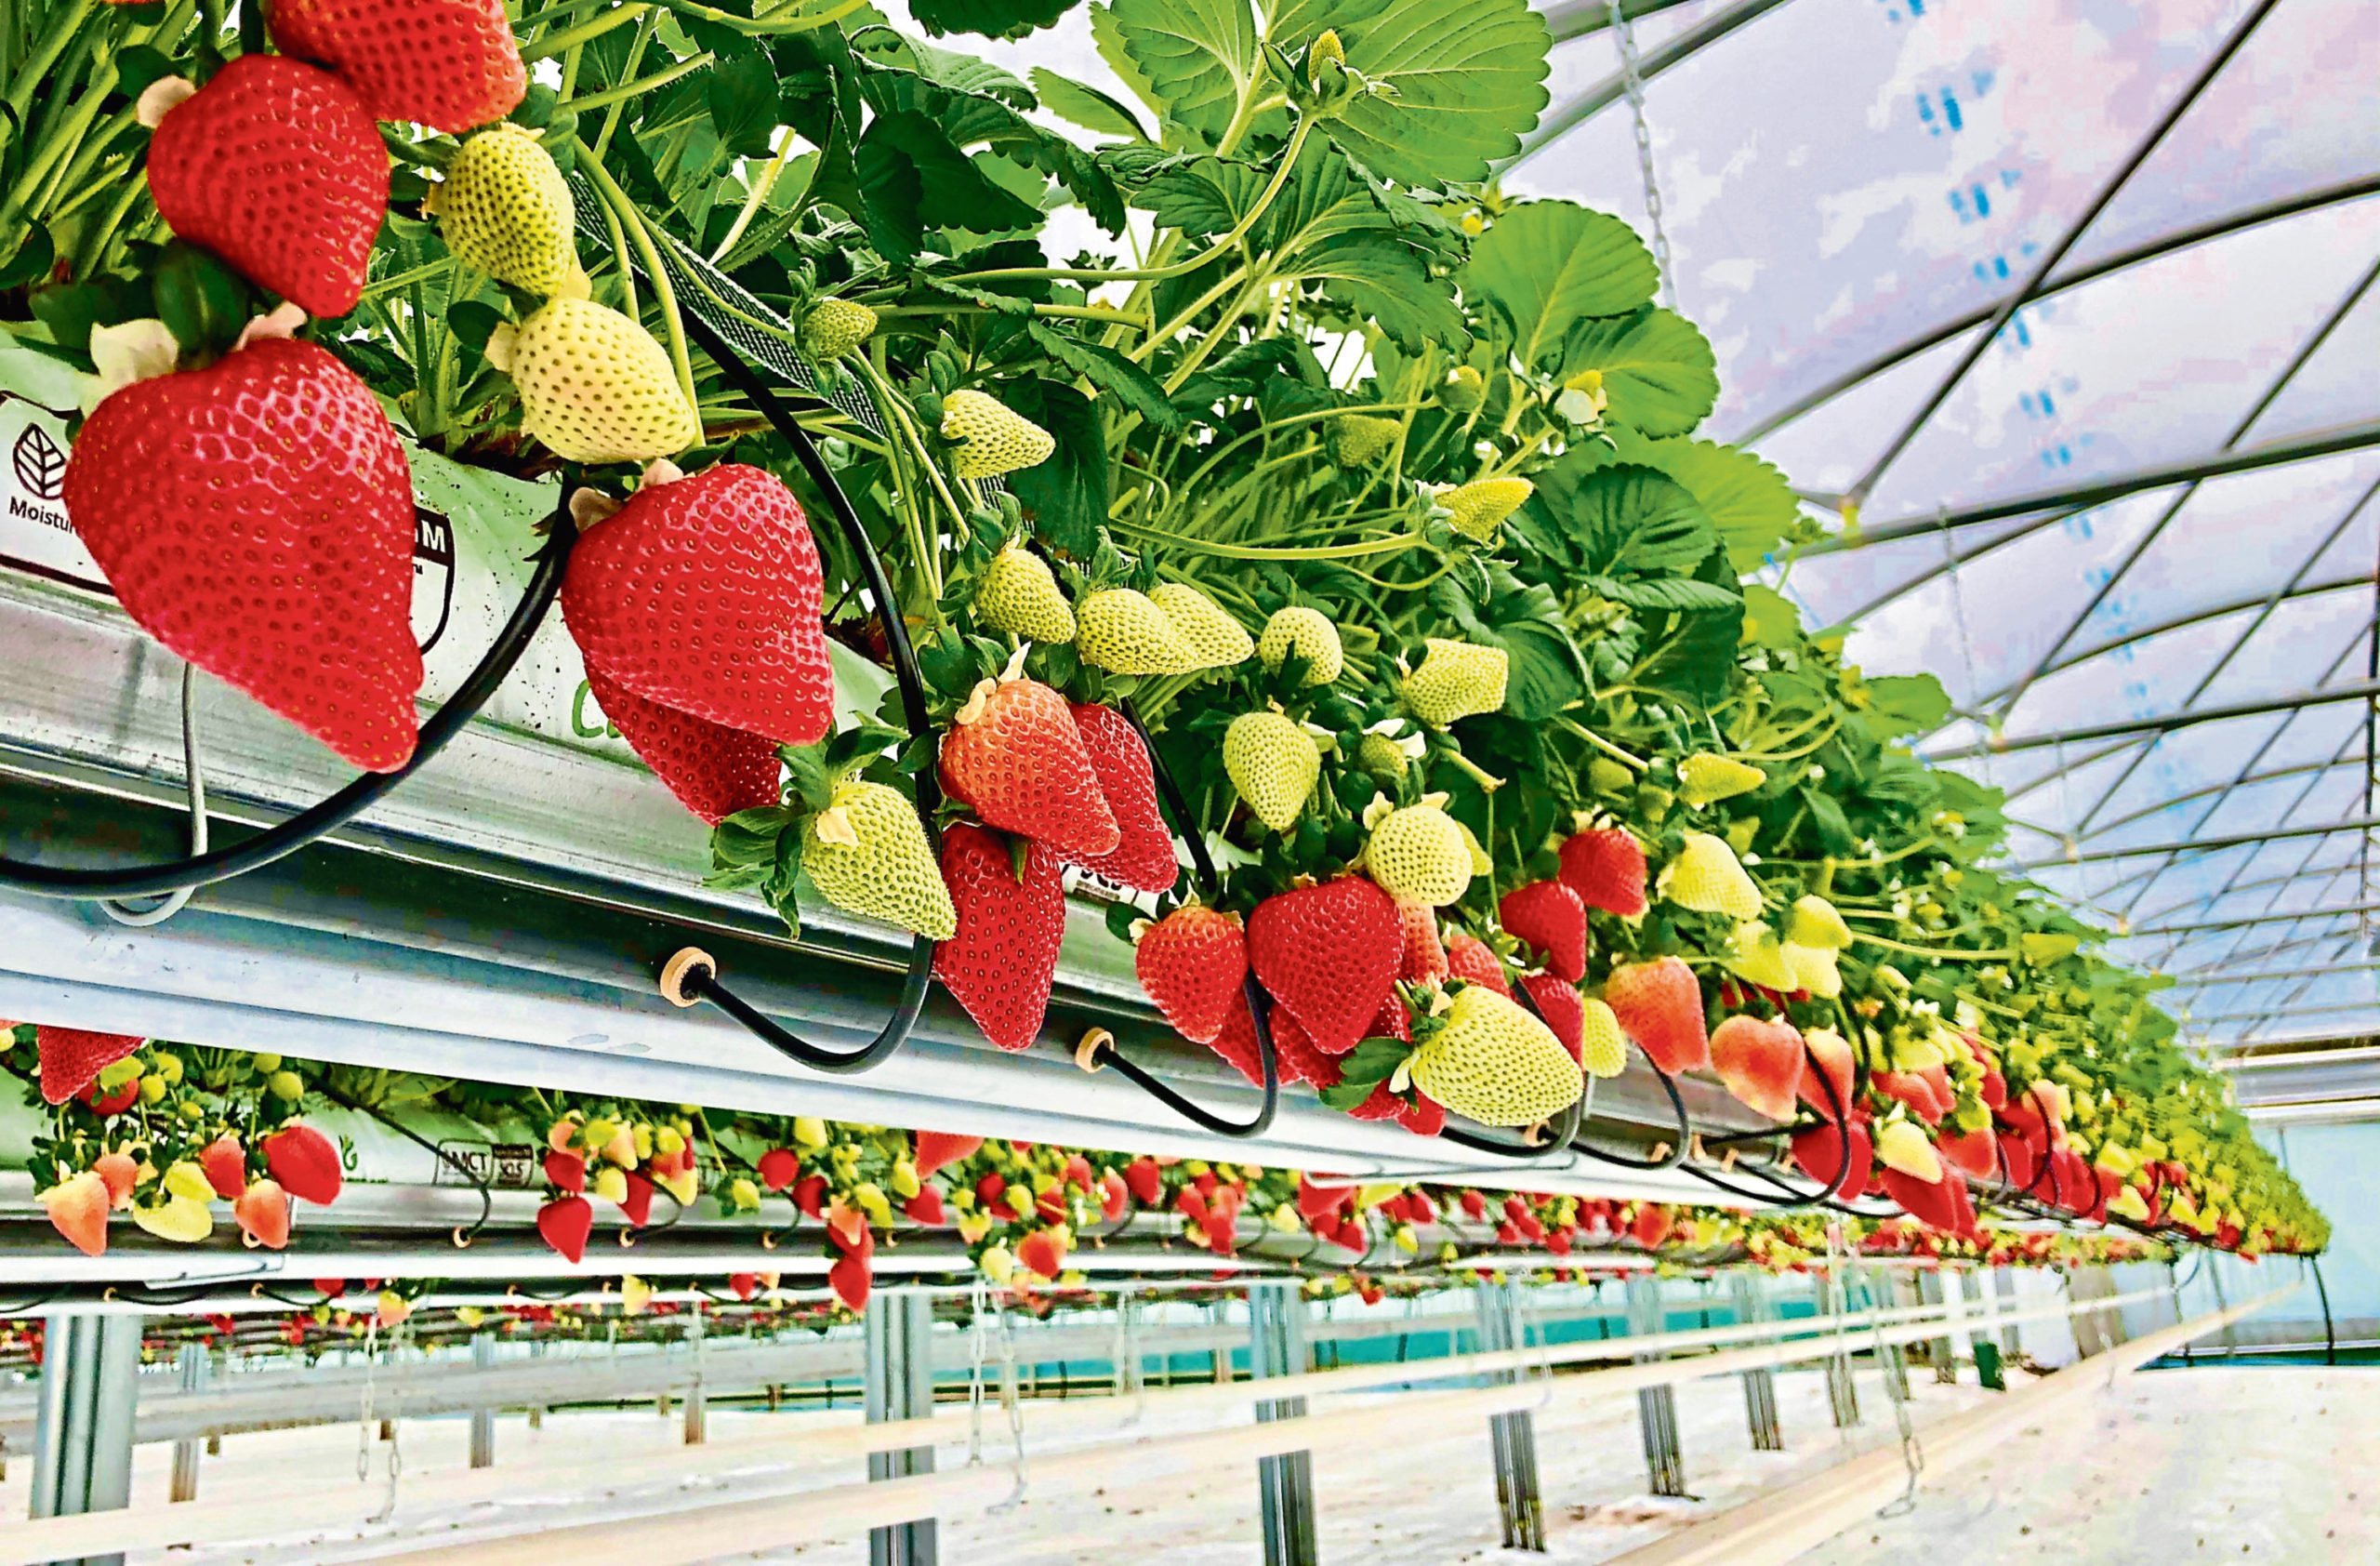 Peter Stirling is frustrated by supermarkets stocking Spanish strawberries while Angus fruit lies unsold.